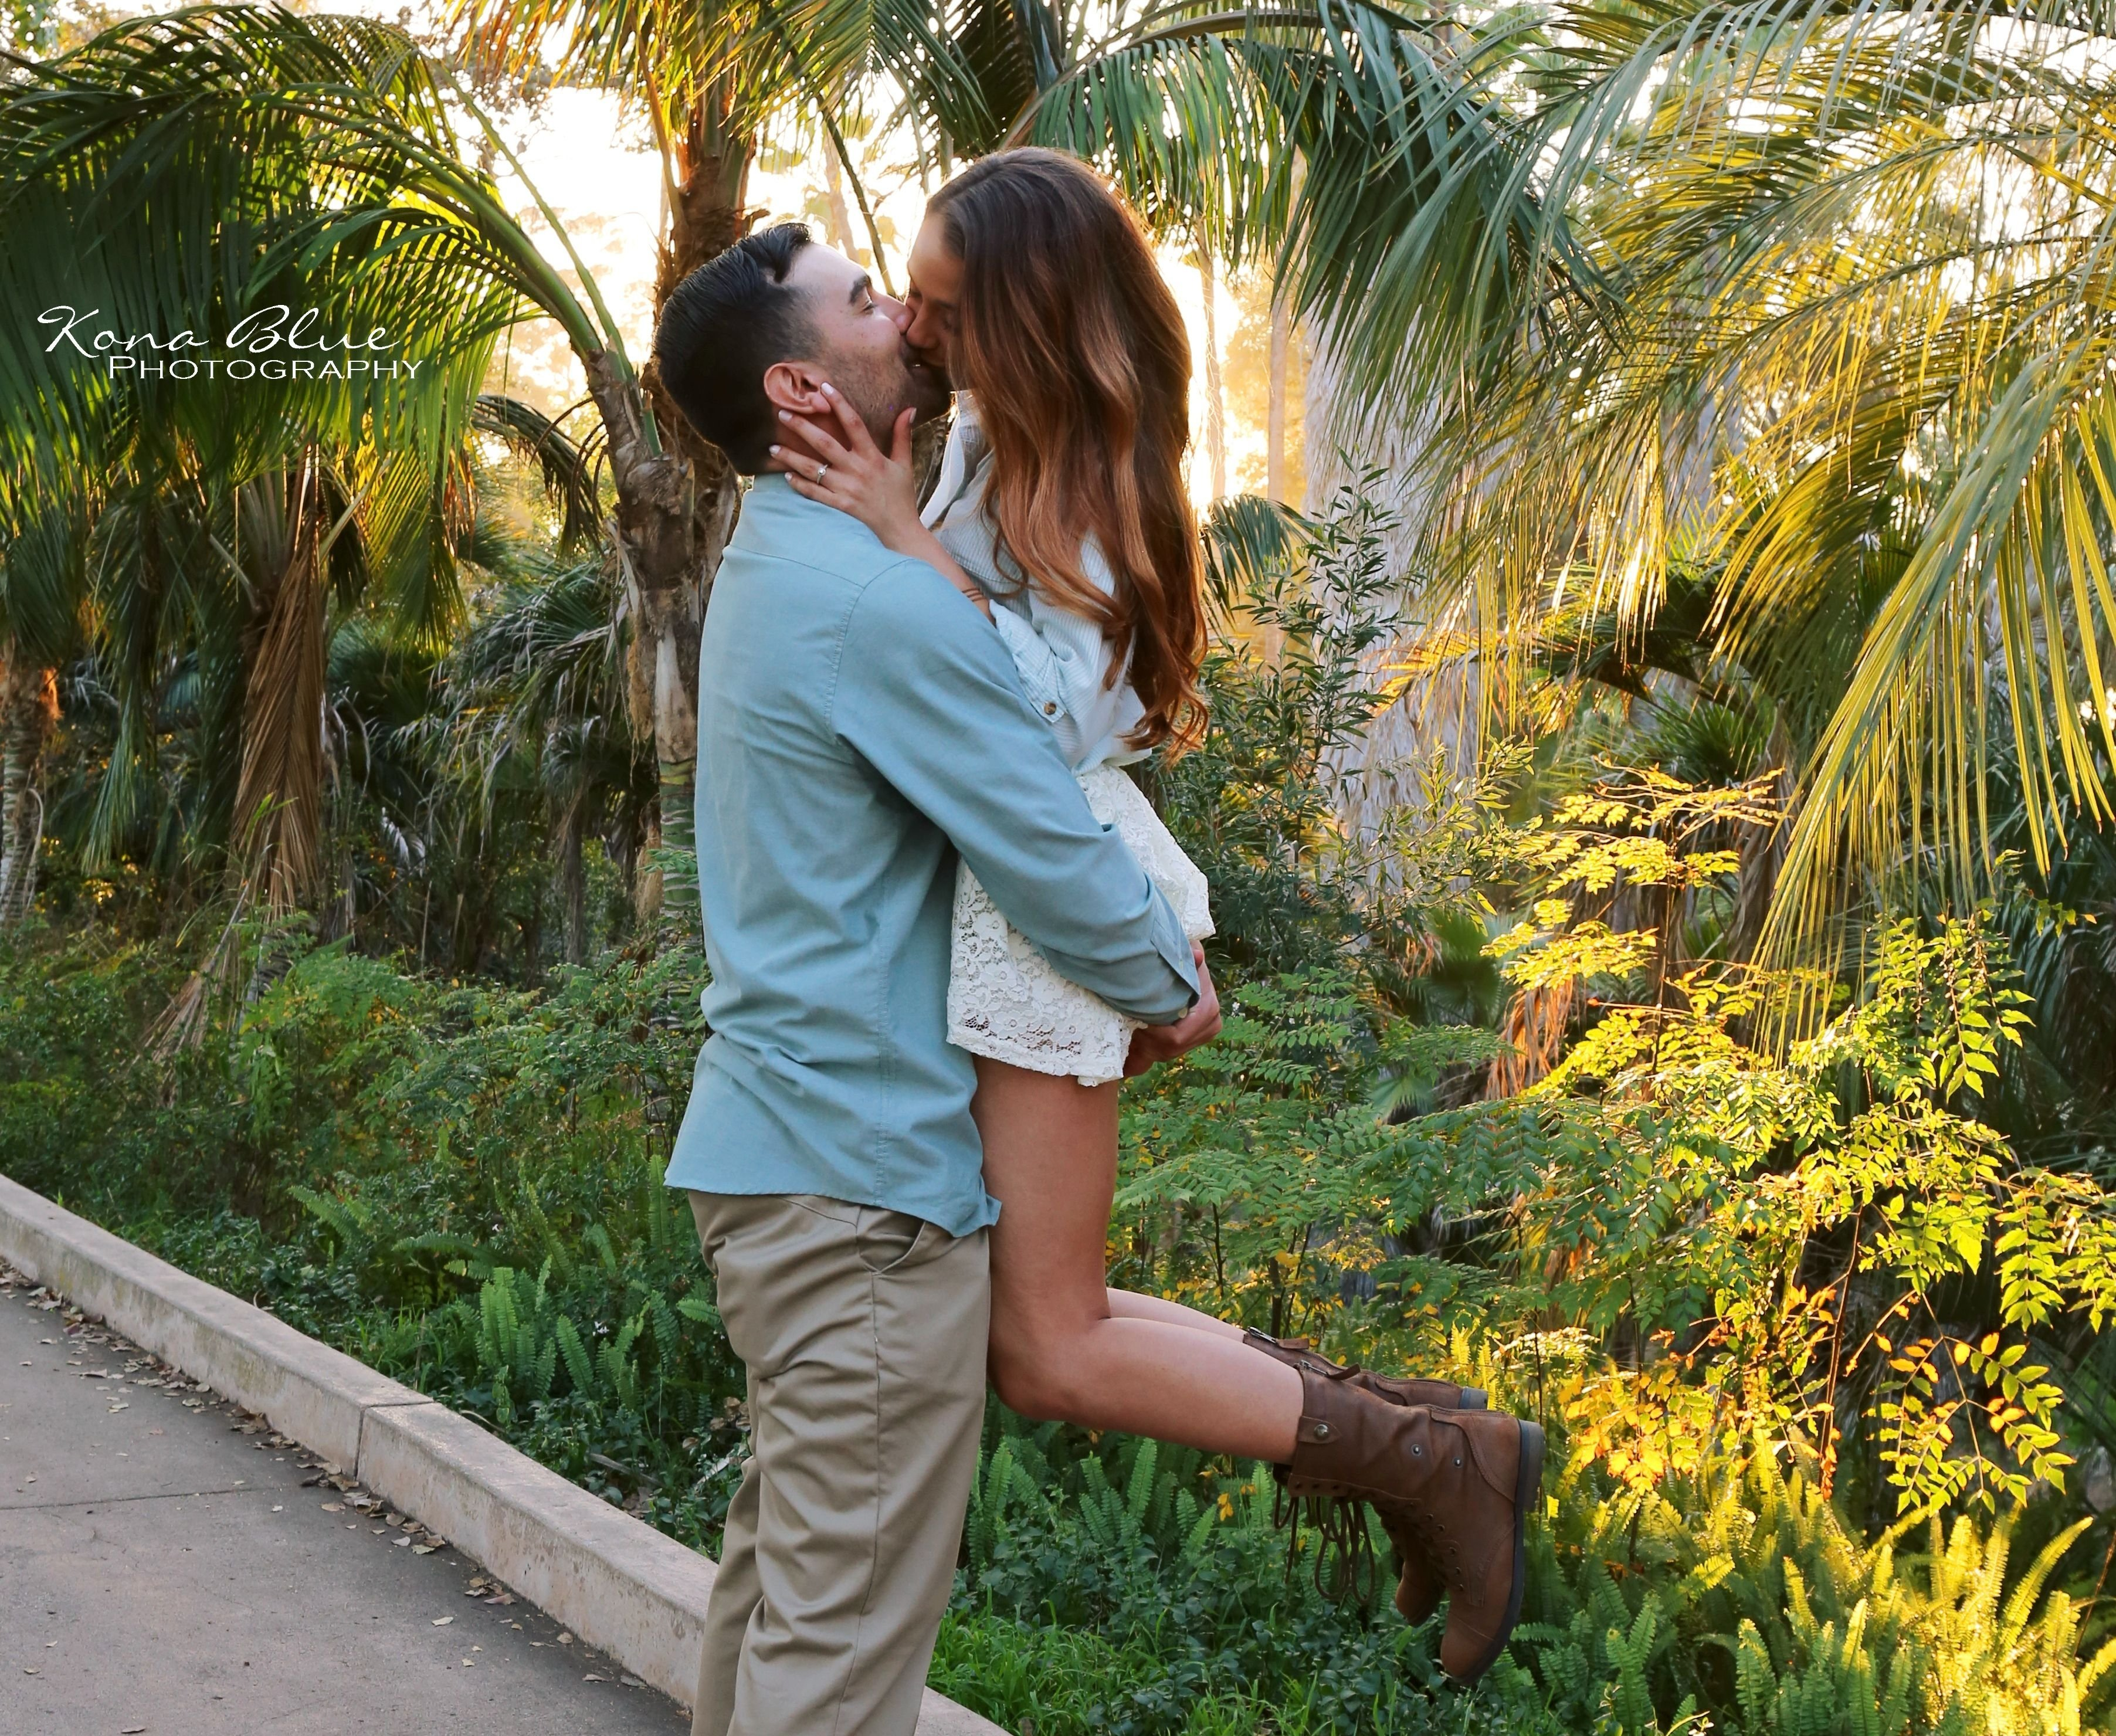 10 Elegant Romantic Date Ideas San Diego engagement save the date photography ideas in balboa park san diego 2 2020